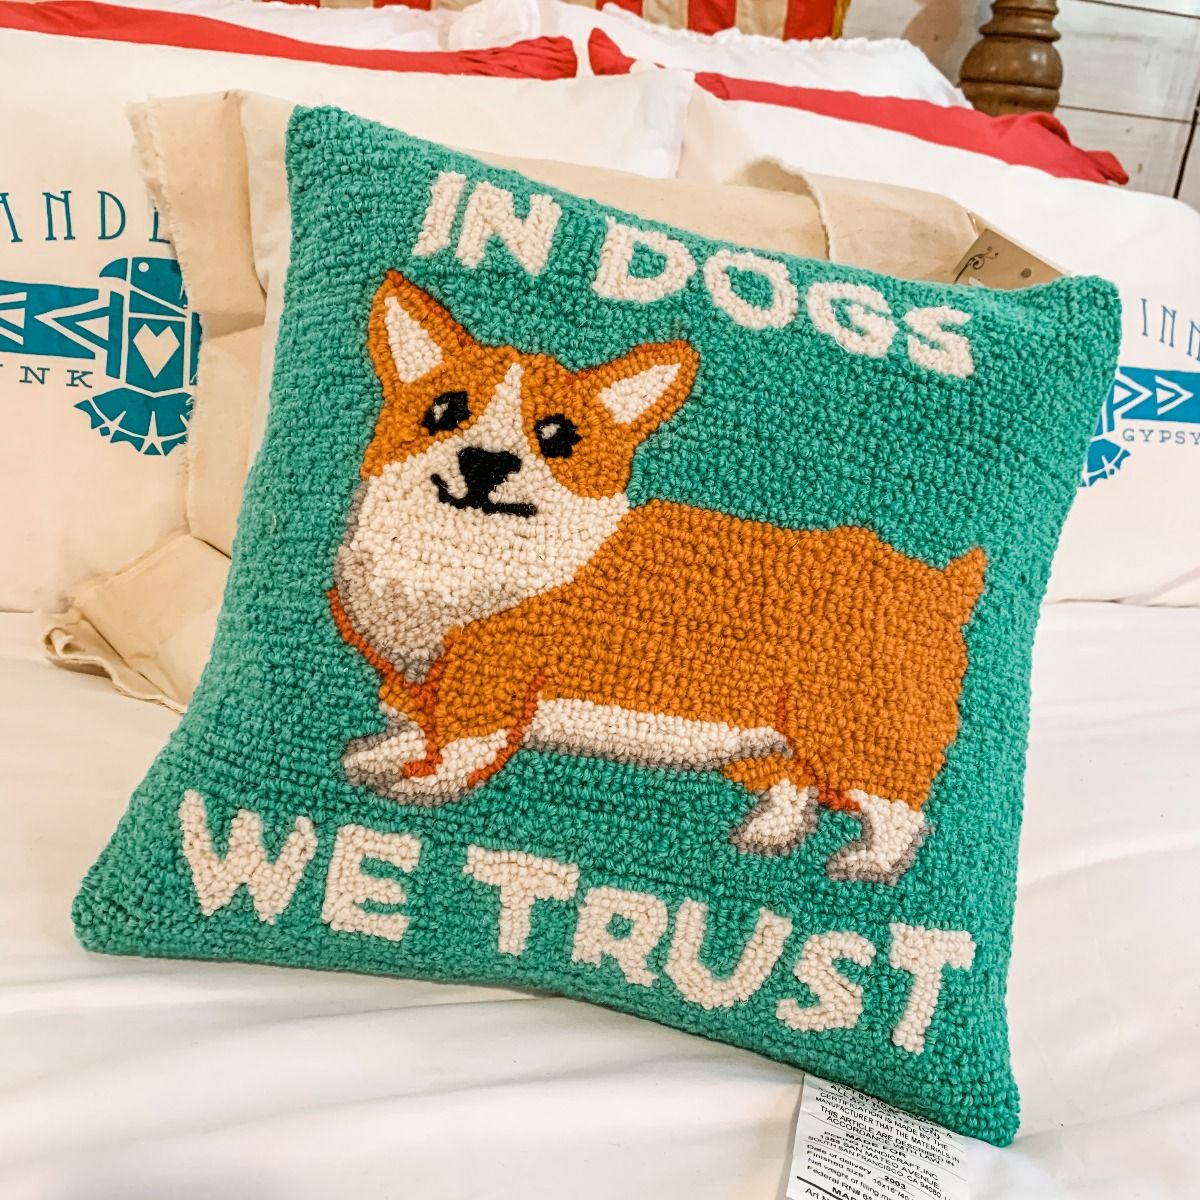 in dogs we trust hooked pillow